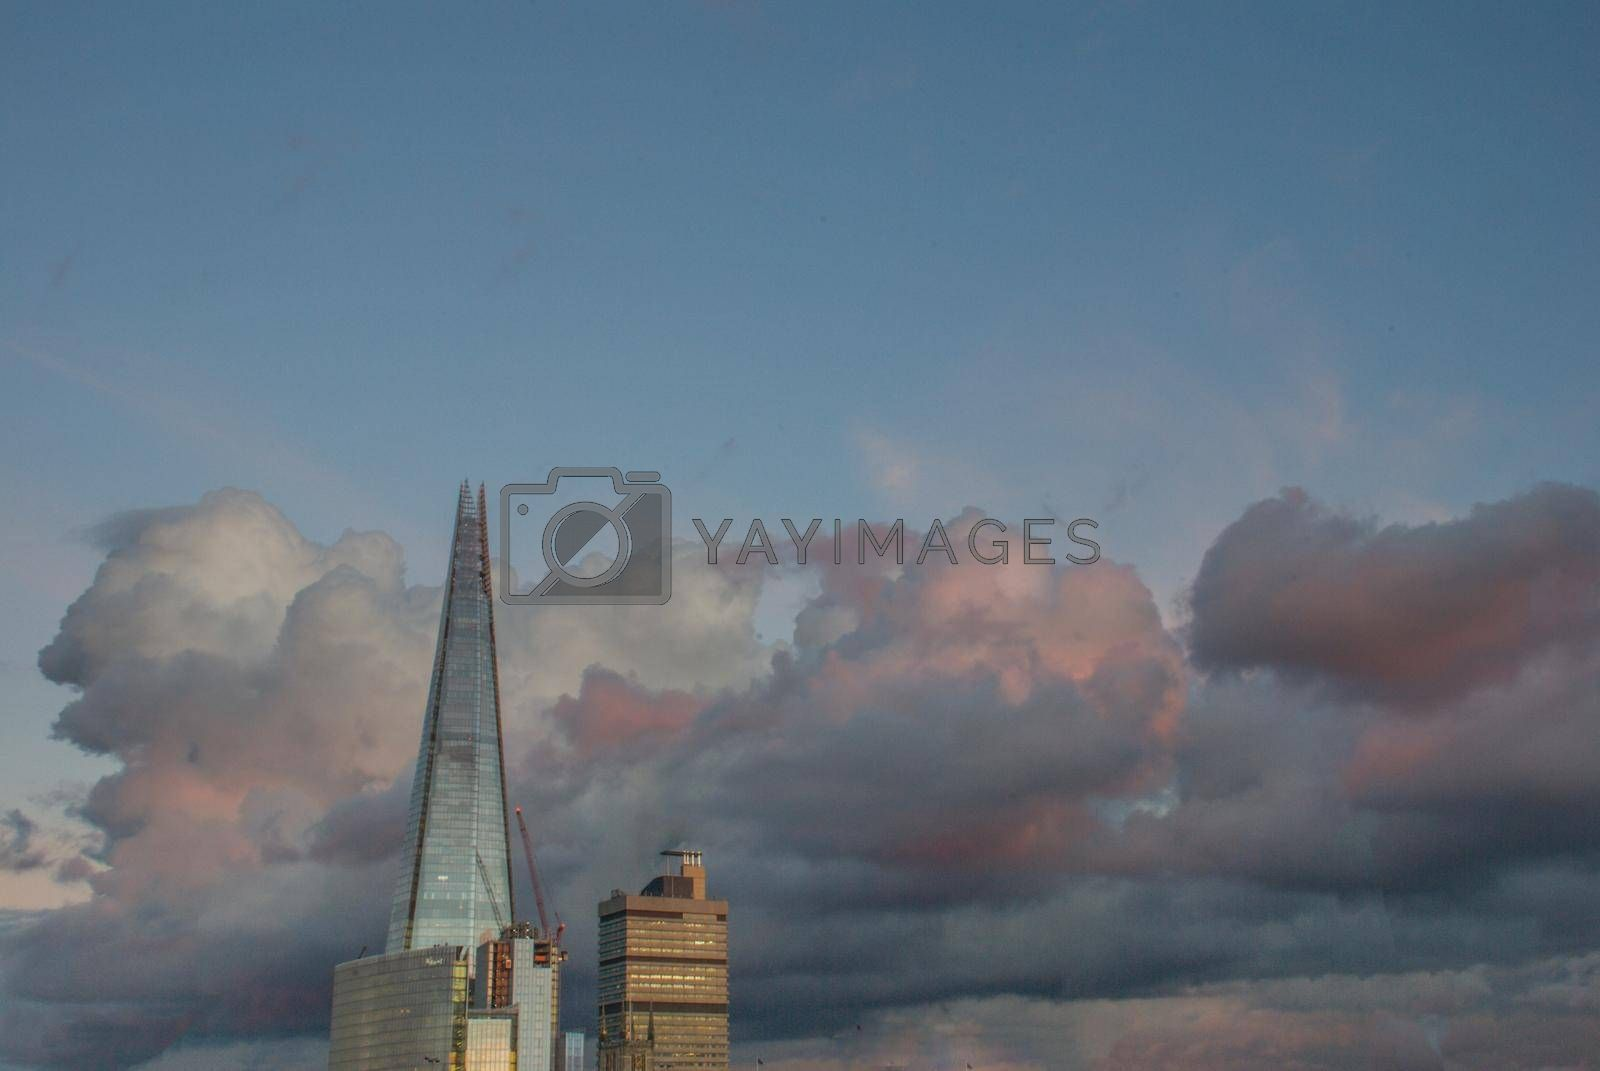 London and Shard, which is the tallest building in the city There is a backdrop of beautiful sky and clouds.